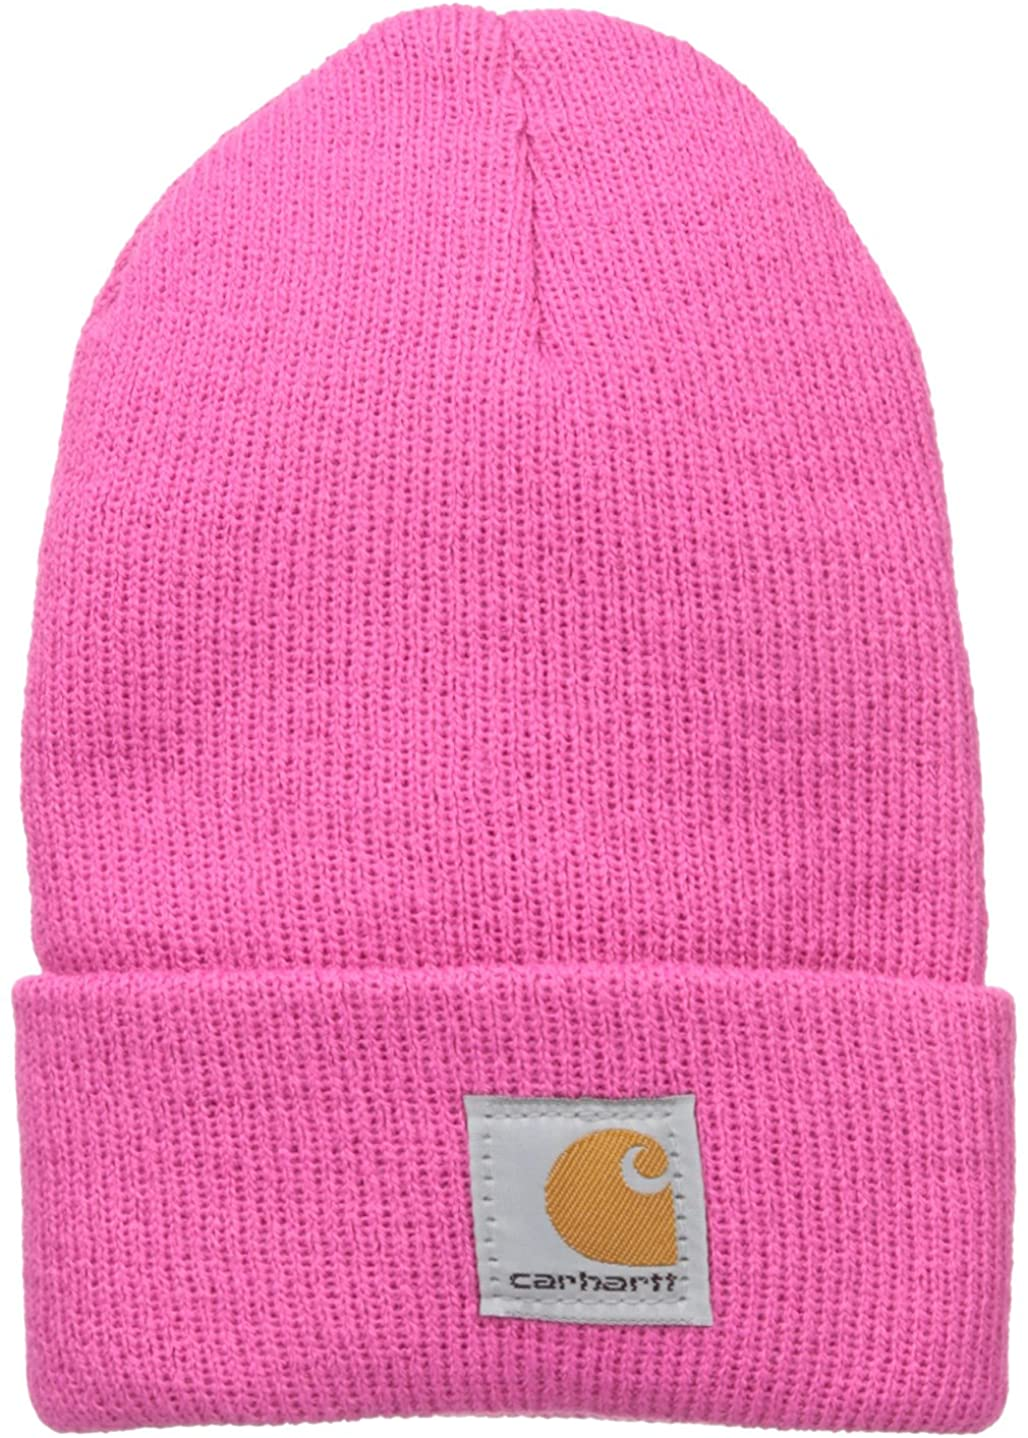 Carhartt Kids' Acrylic Watch Hat, Raspberry Rose, Toddler